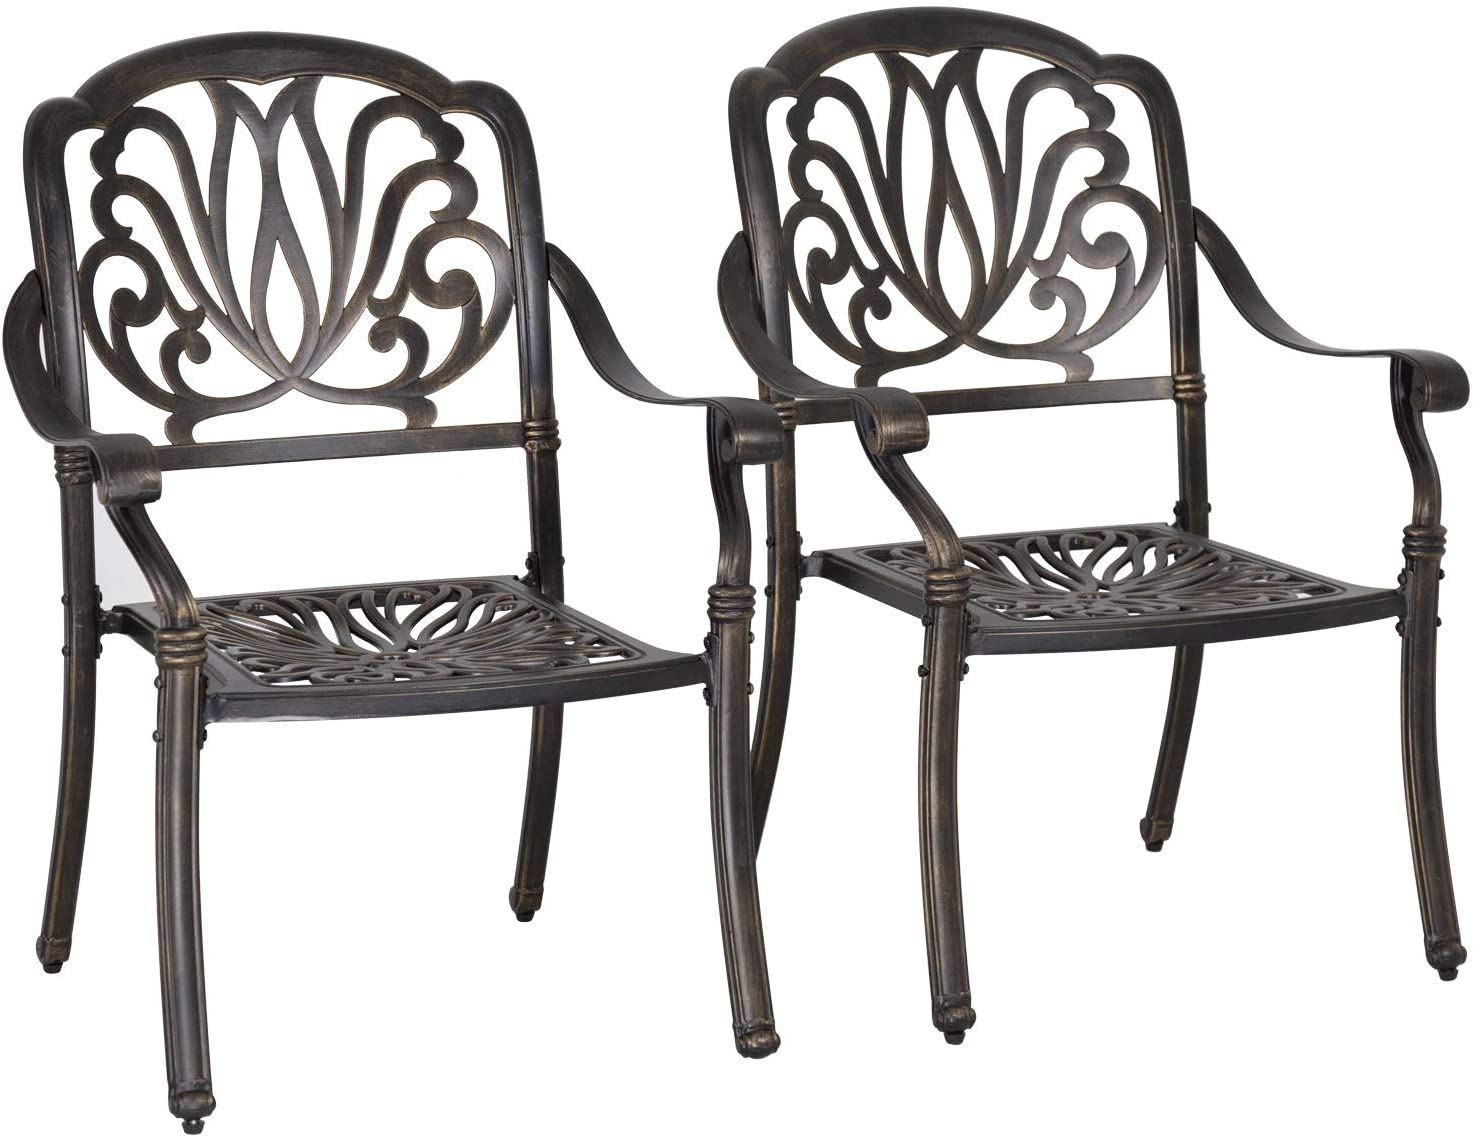 patio chairs dining chairs set of 2 wrought iron patio furniture outdoor chair patio furniture chat set weather resistant